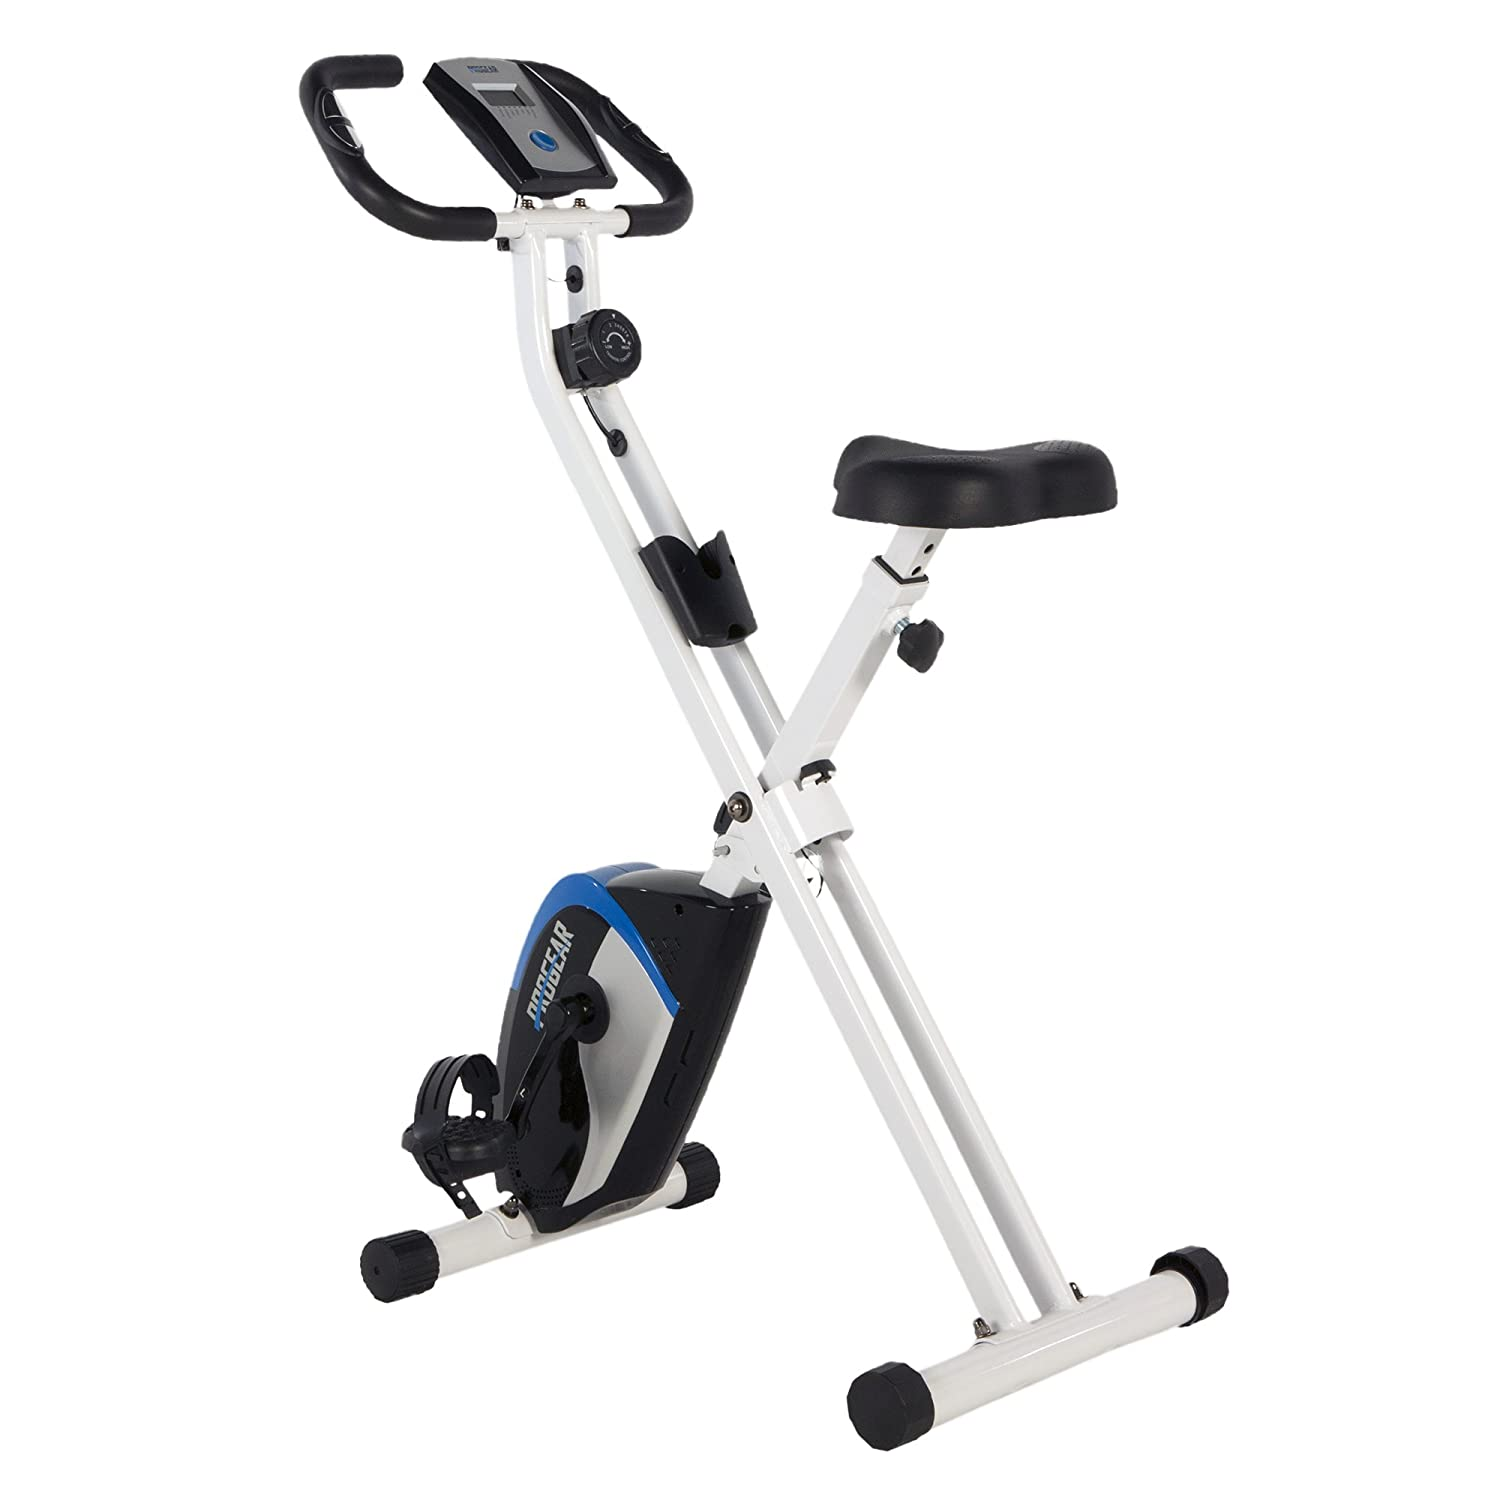 Sunny Health & Fitness Magnetic Folding Recumbent Bike Exercise Bike SF-RB1117